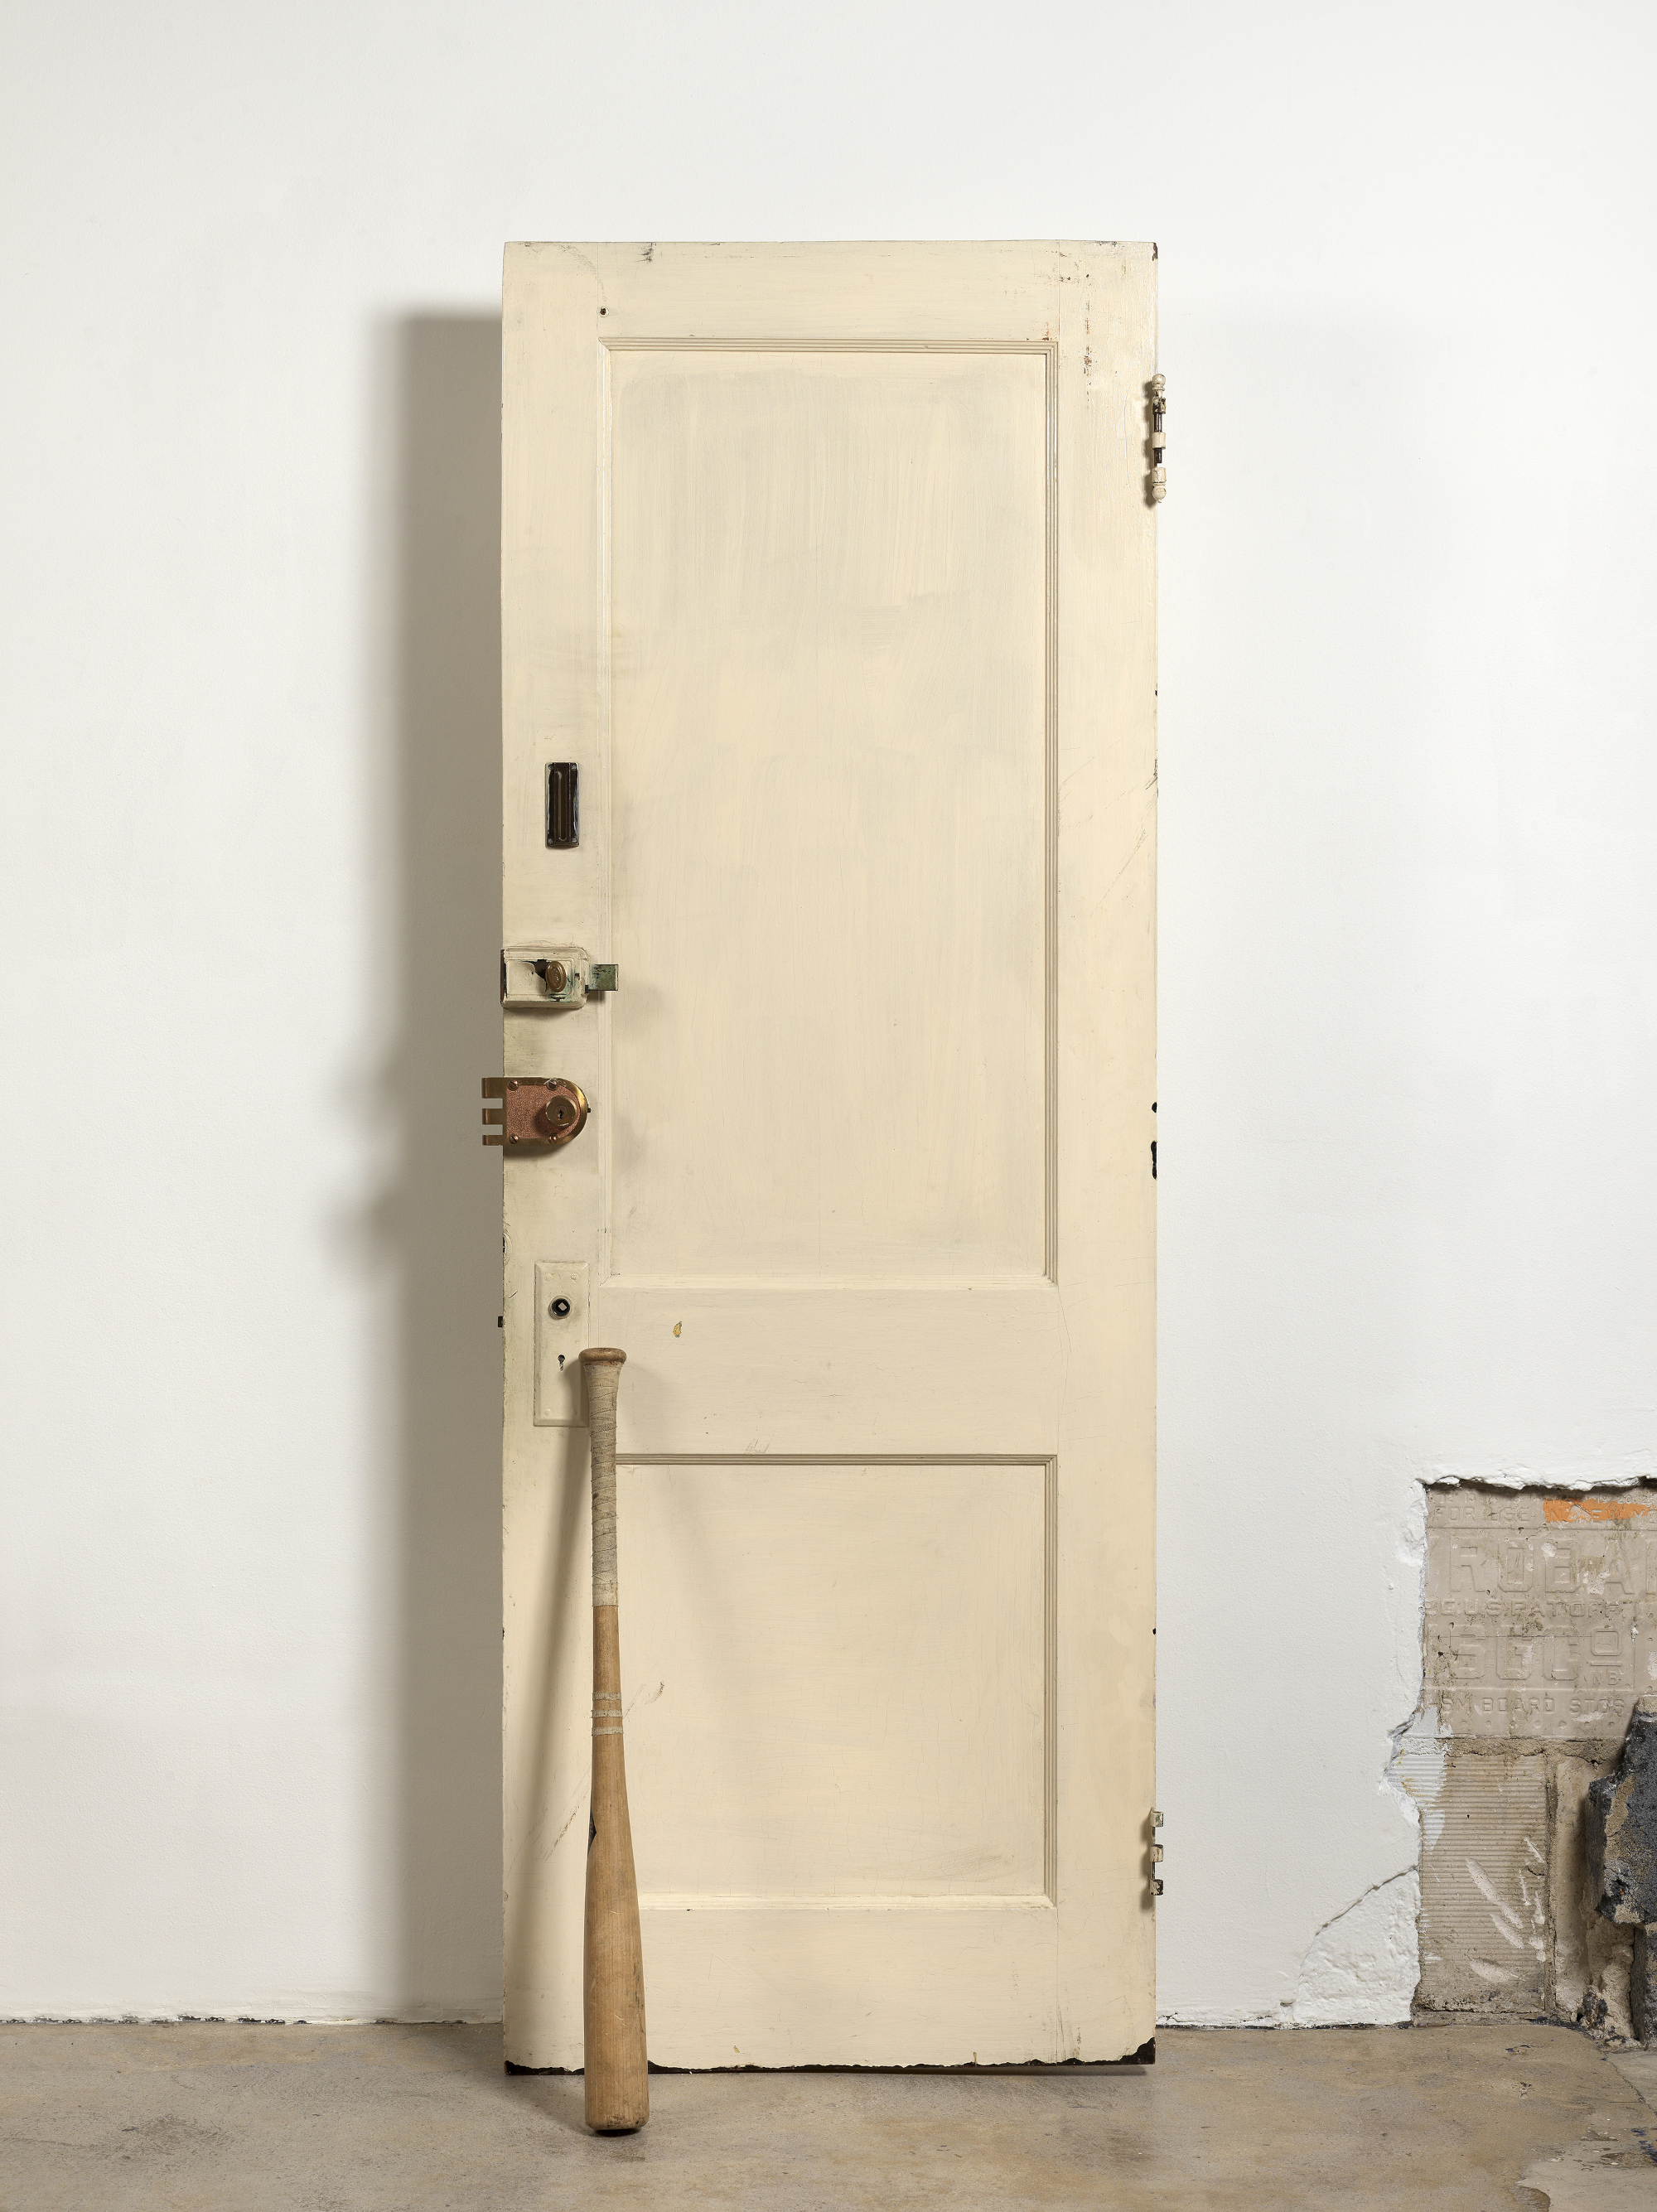 Diamond Stingily, Entryways, 2016. Door with locks, bat, 79 x 25 in (200.7 x 63.5 cm). Collection Dr. Gerardo Capo. Courtesy the artist and Queer Thoughts, New York.